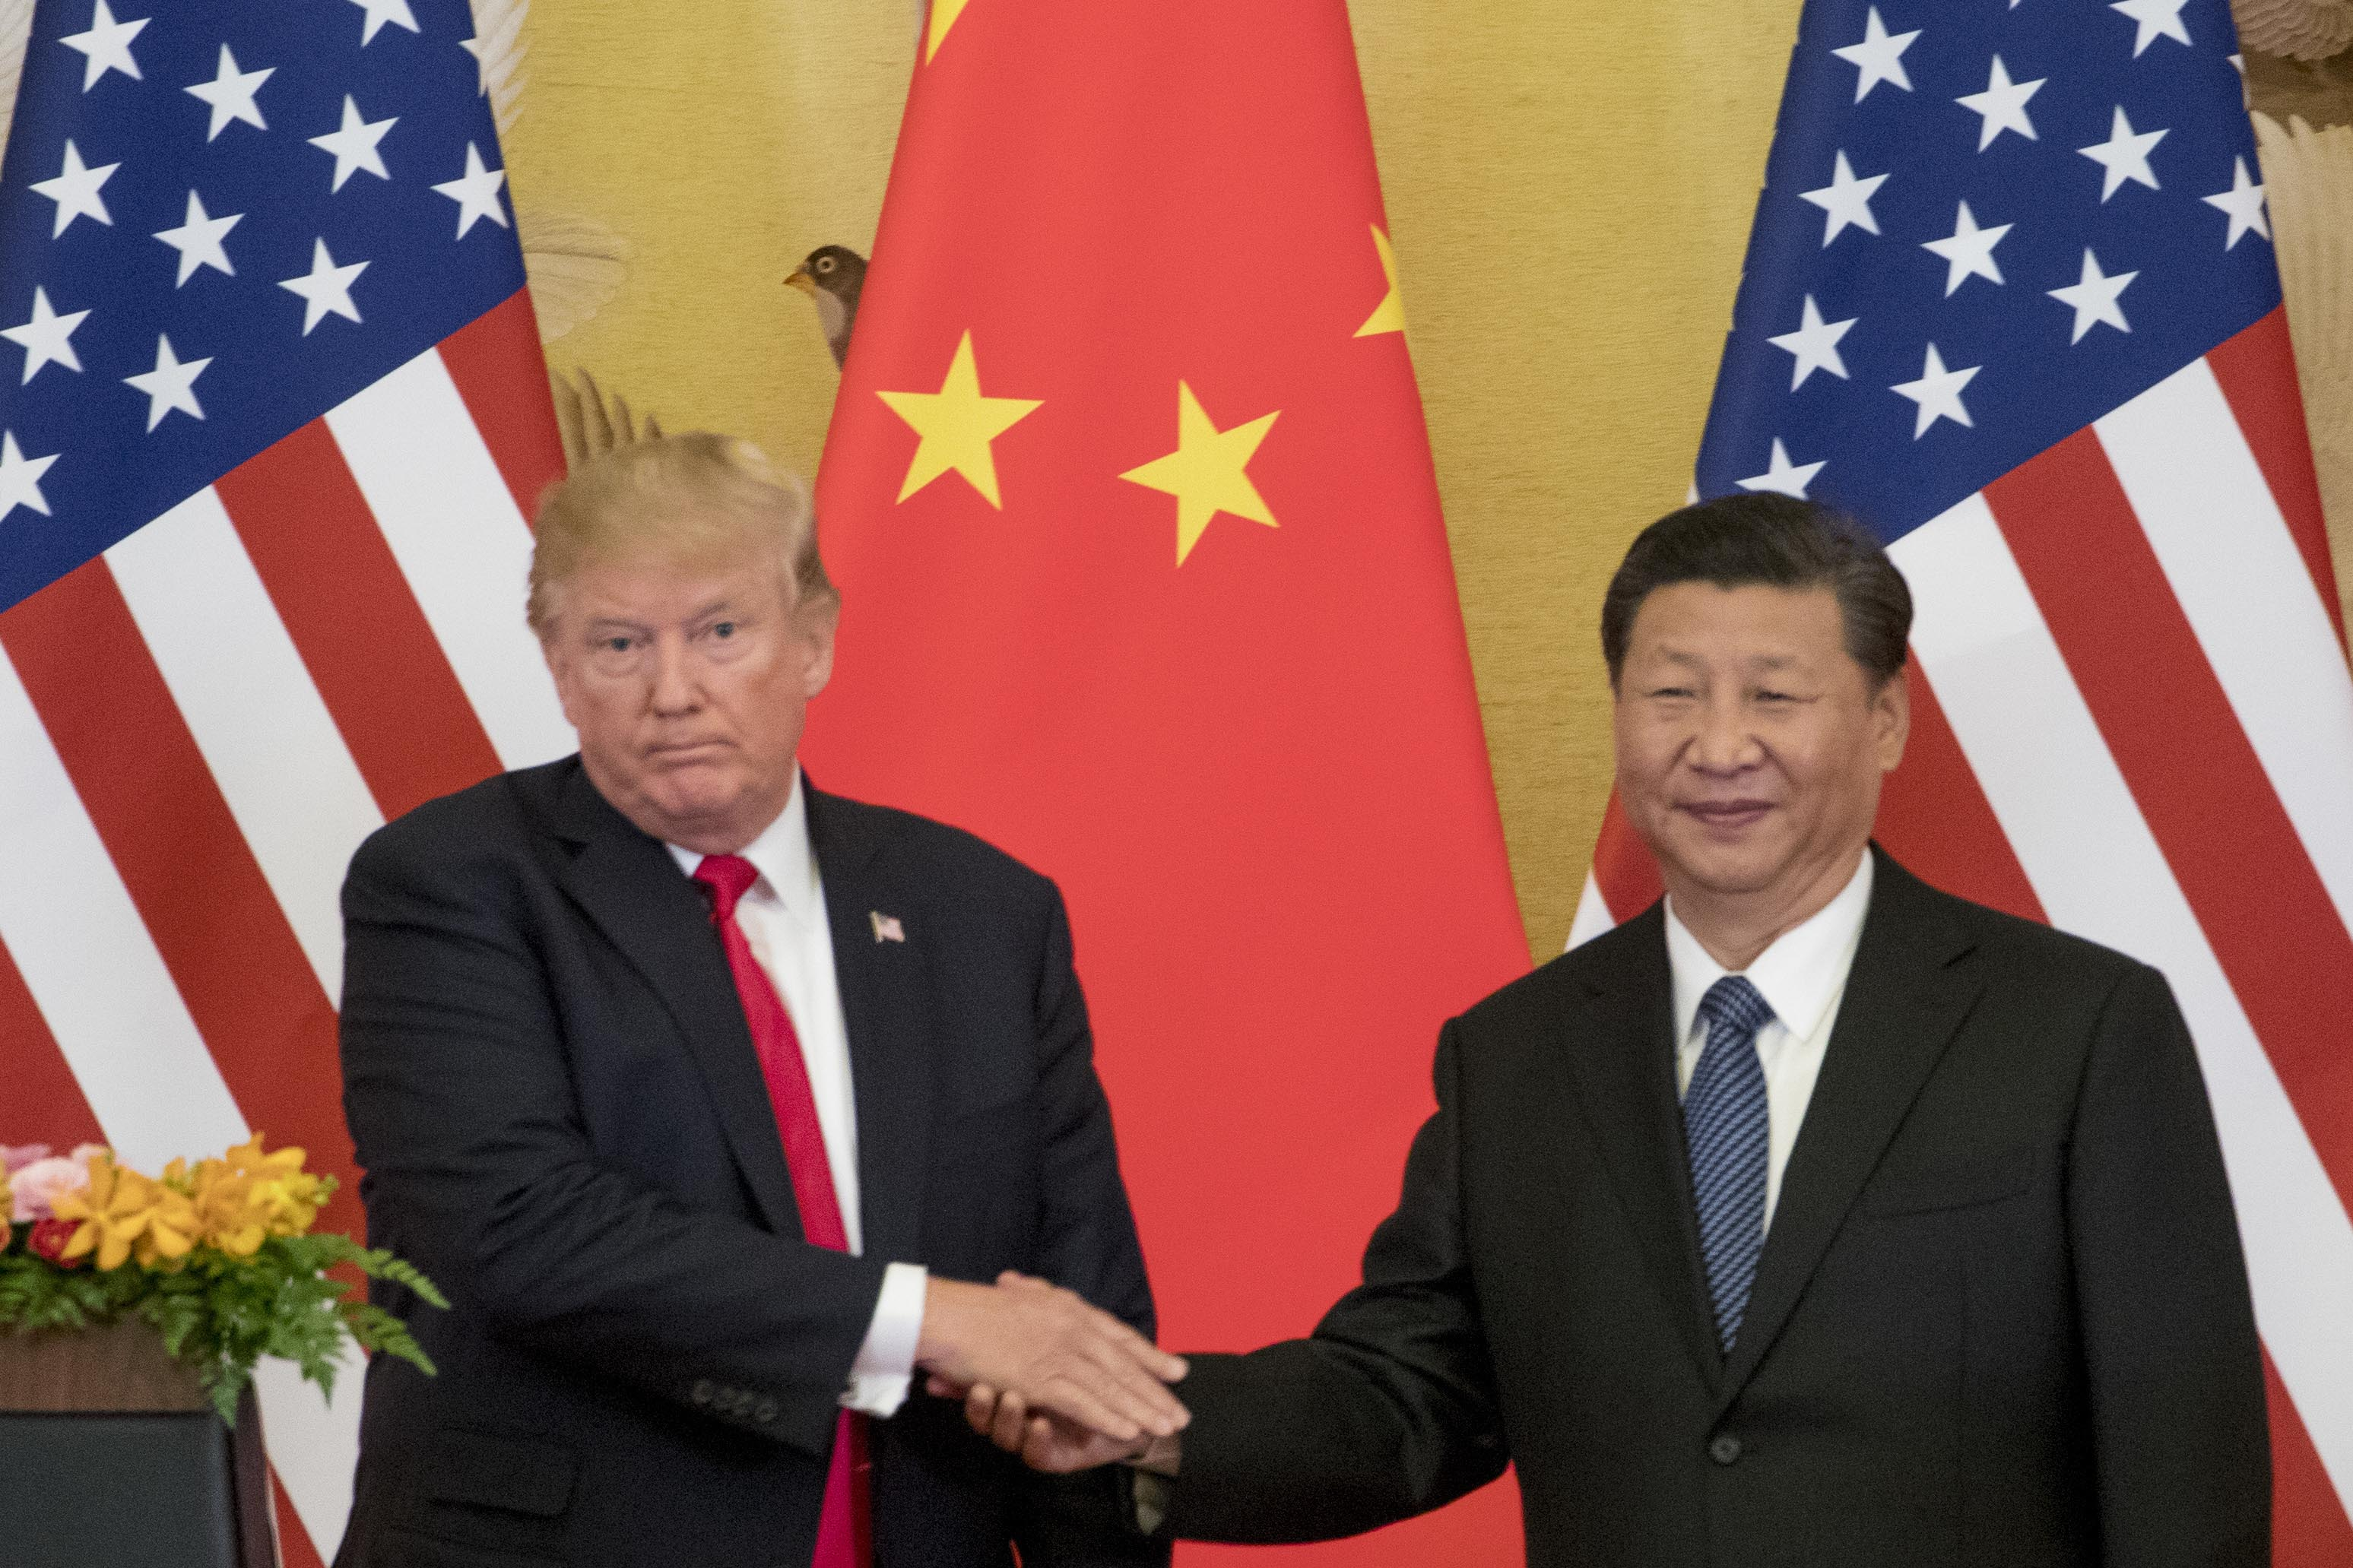 Trump signs HK bills, China warns retaliation